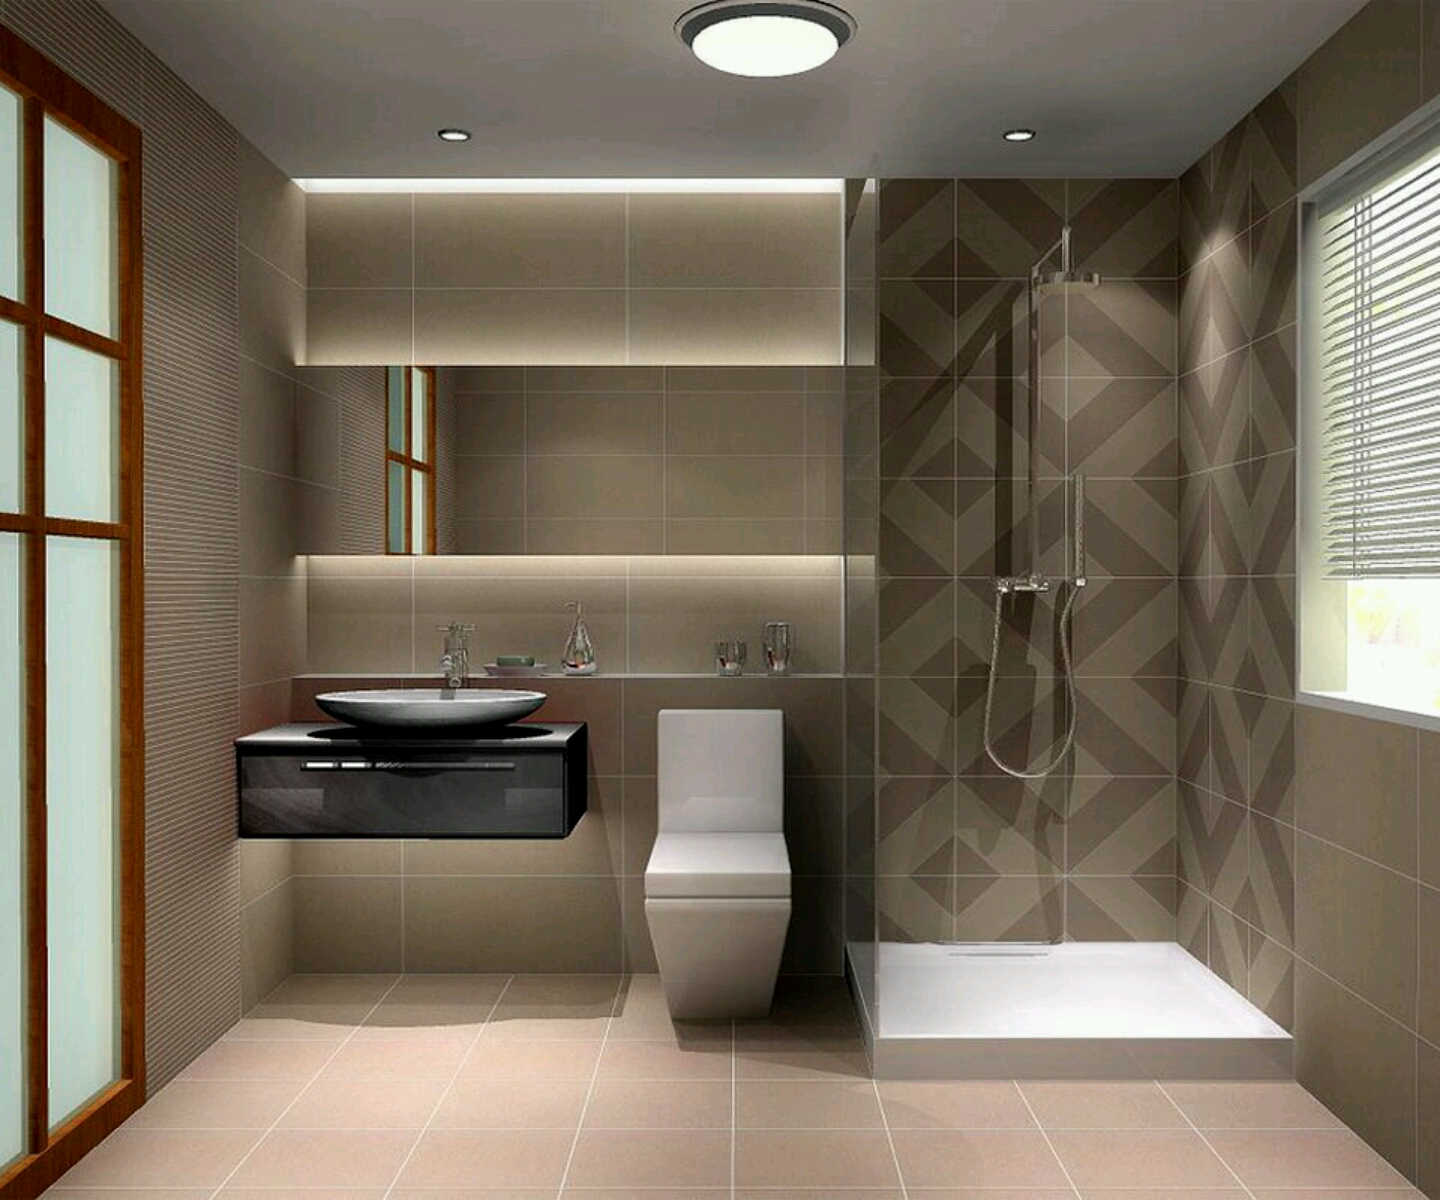 Modern Homes Modern Bathrooms Designs Ideas: Modern Bathrooms Designs Pictures.